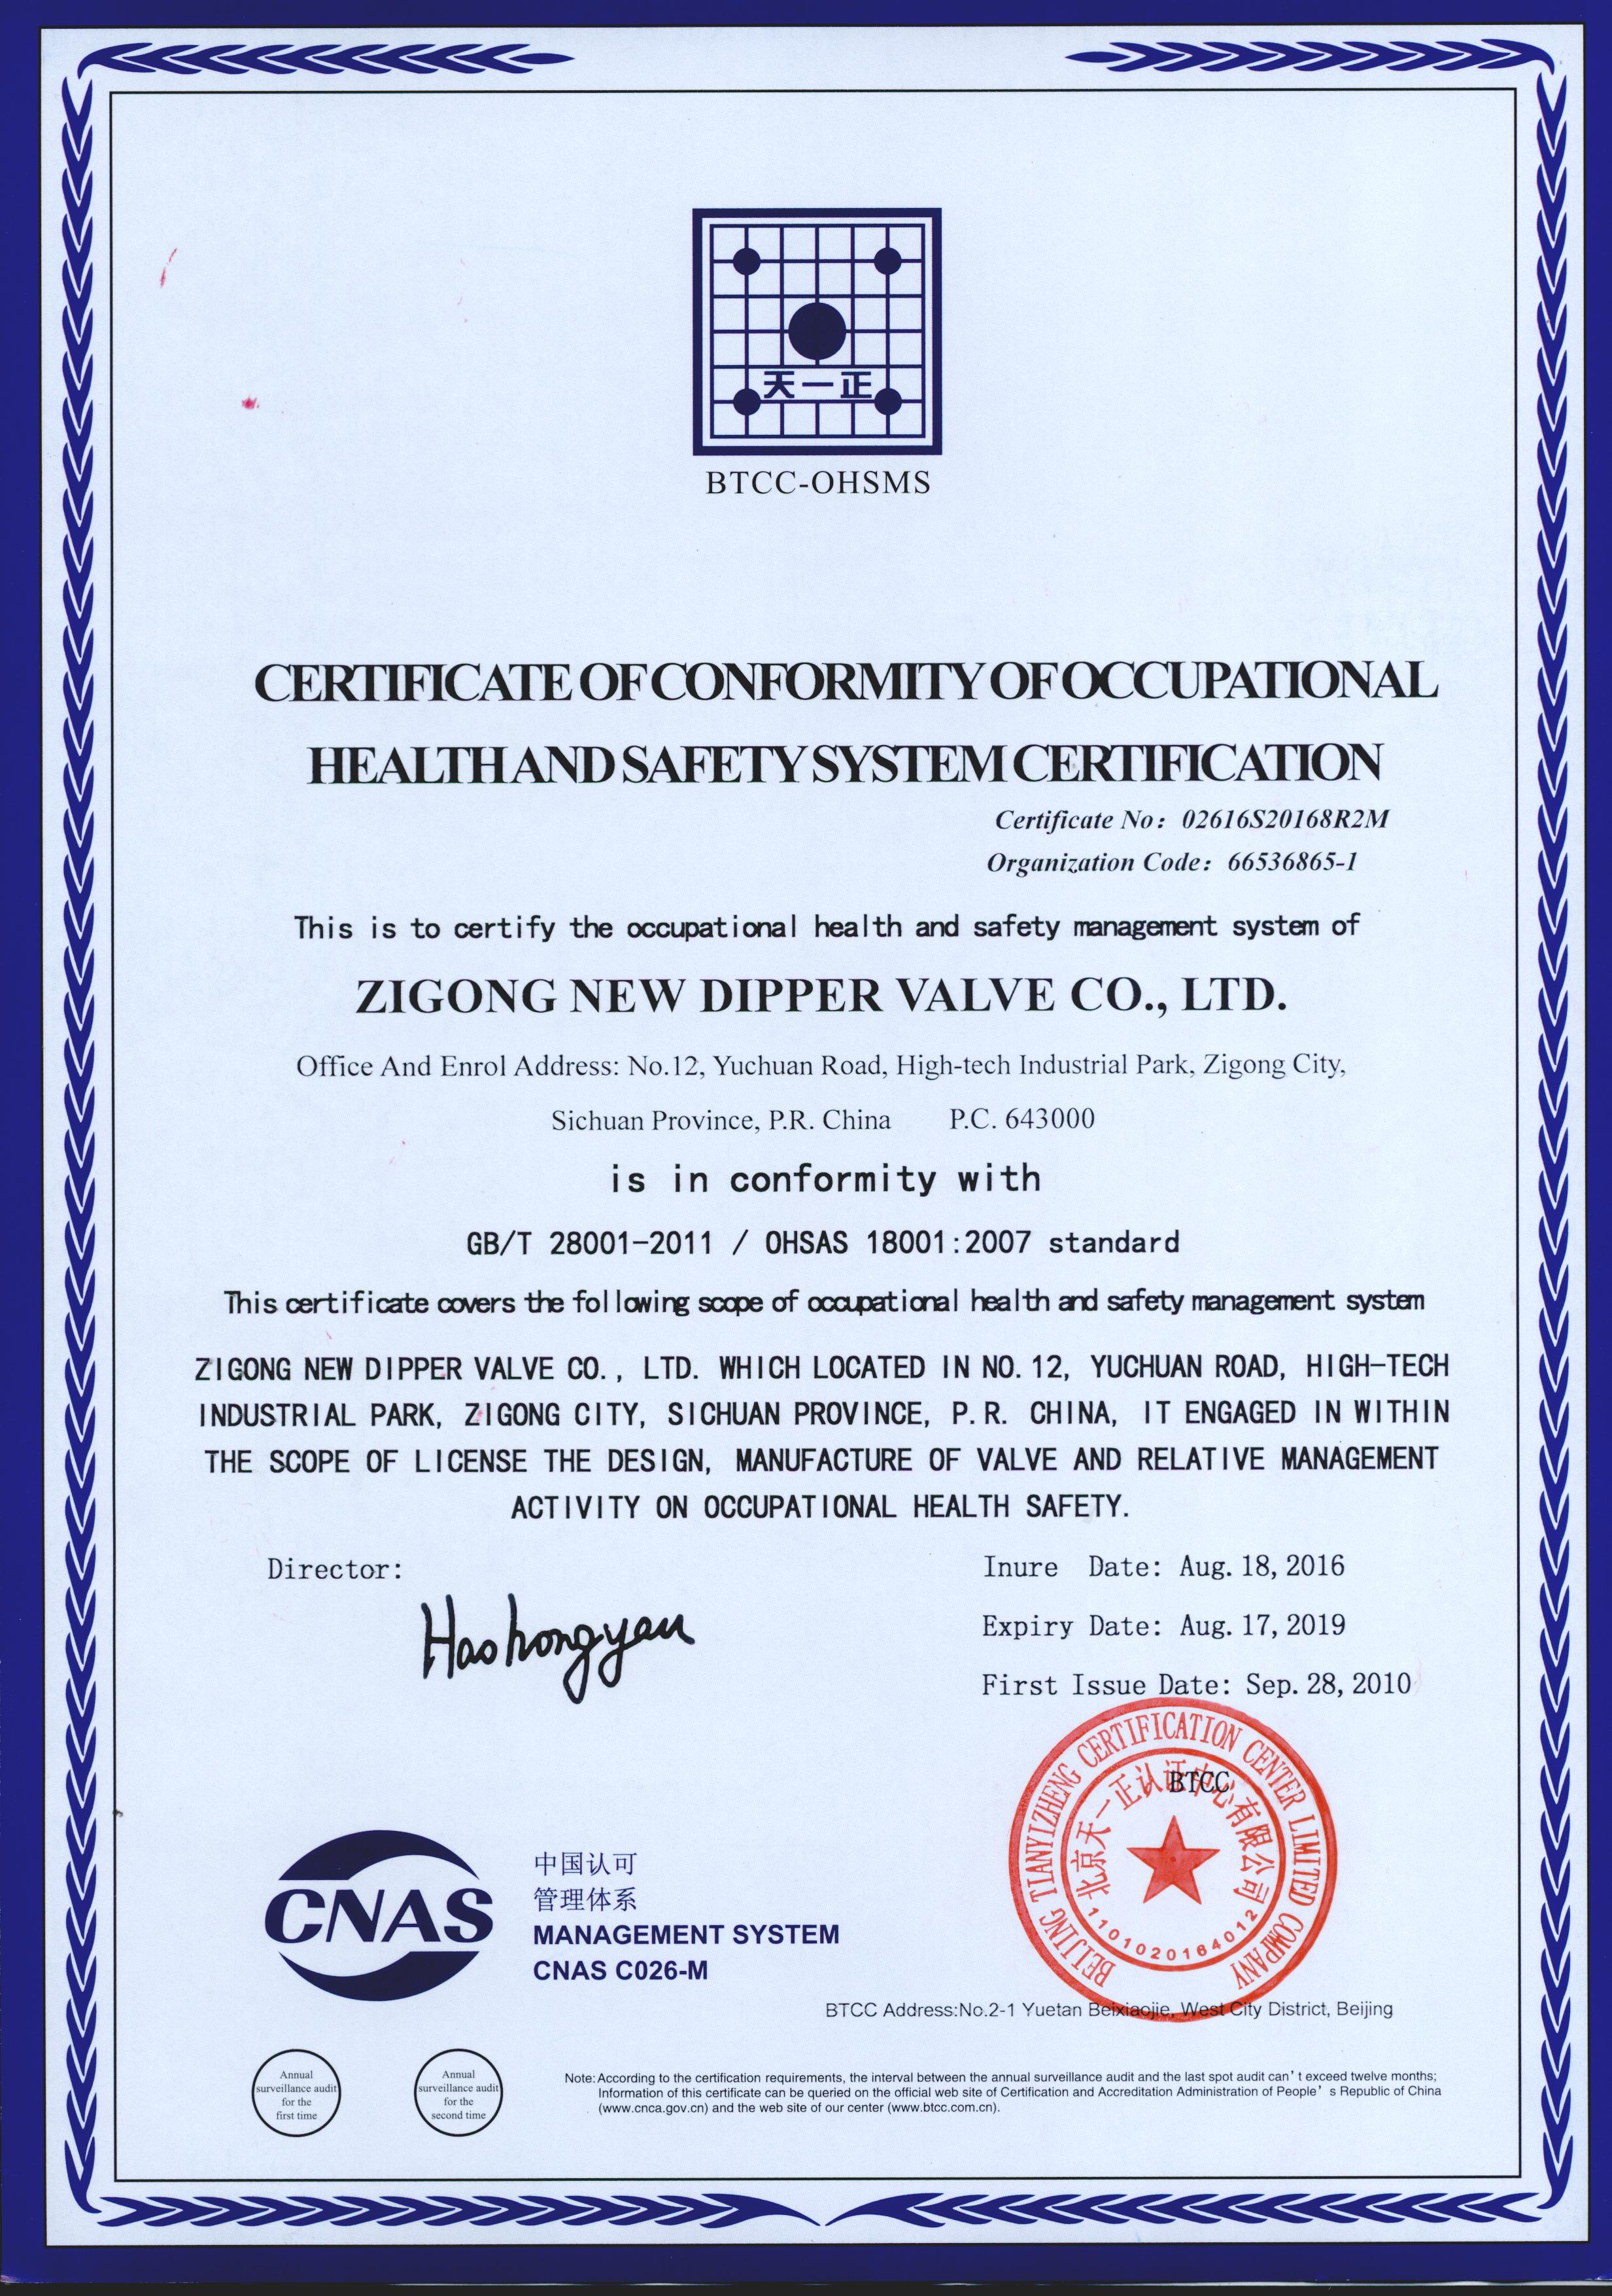 Occupational Safety And Health Management System Certificate